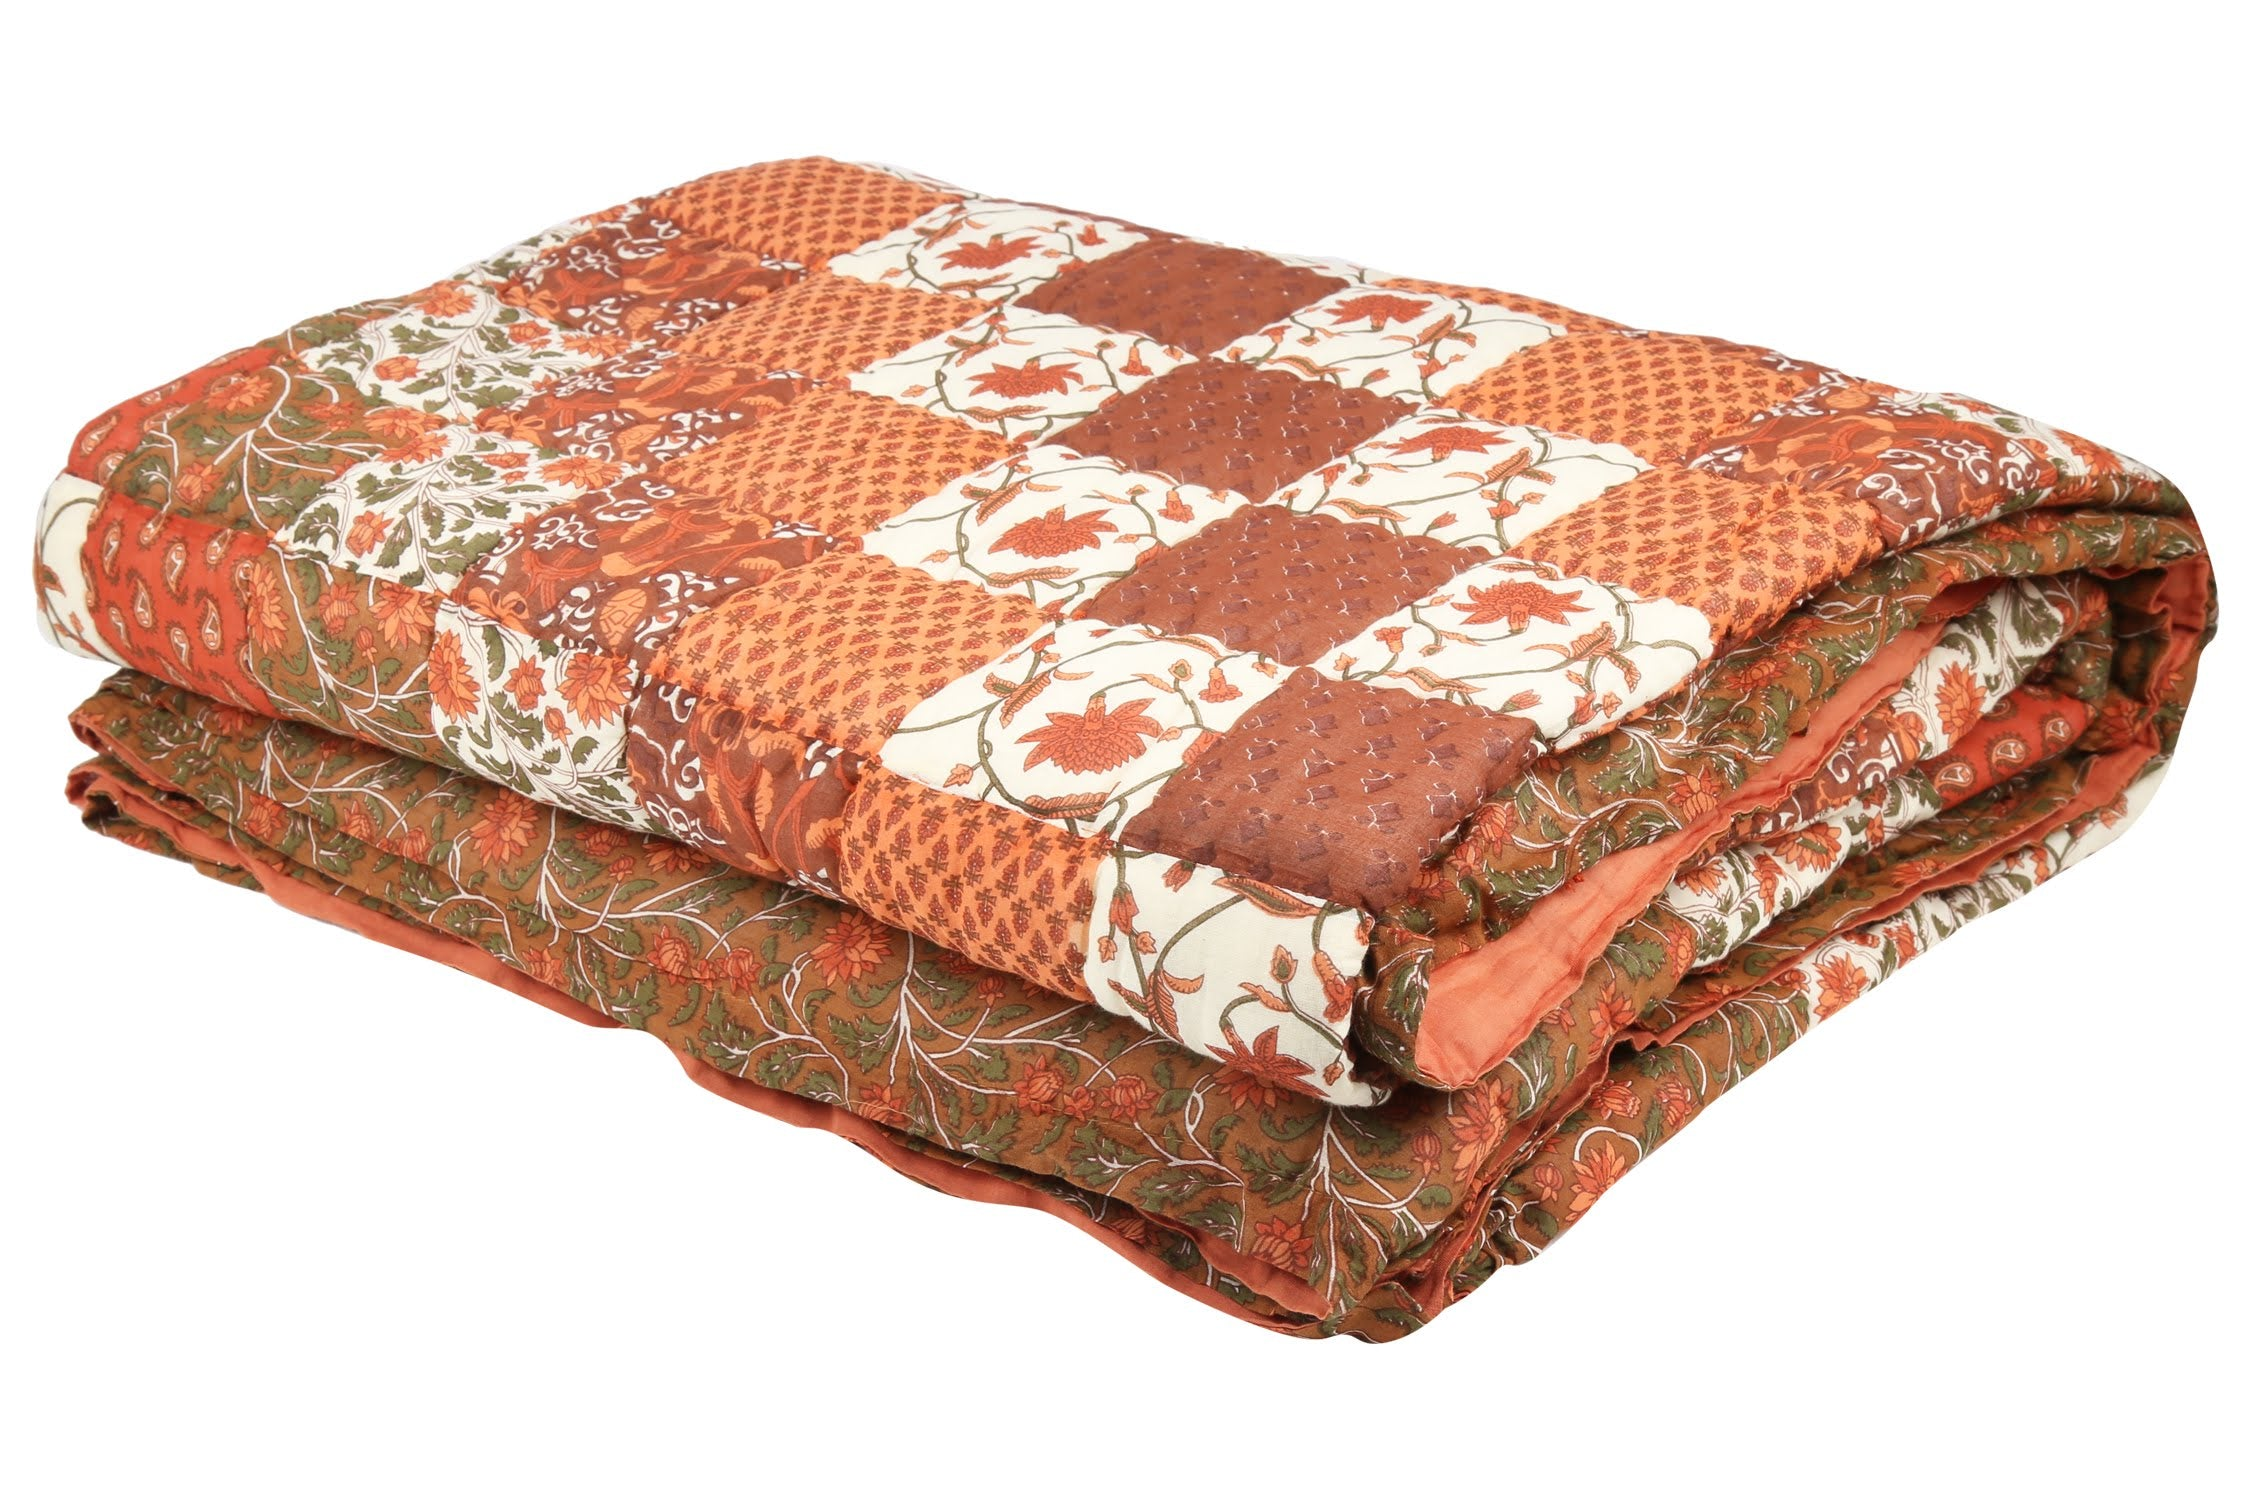 Brown Royal Garden Cotton Duvet